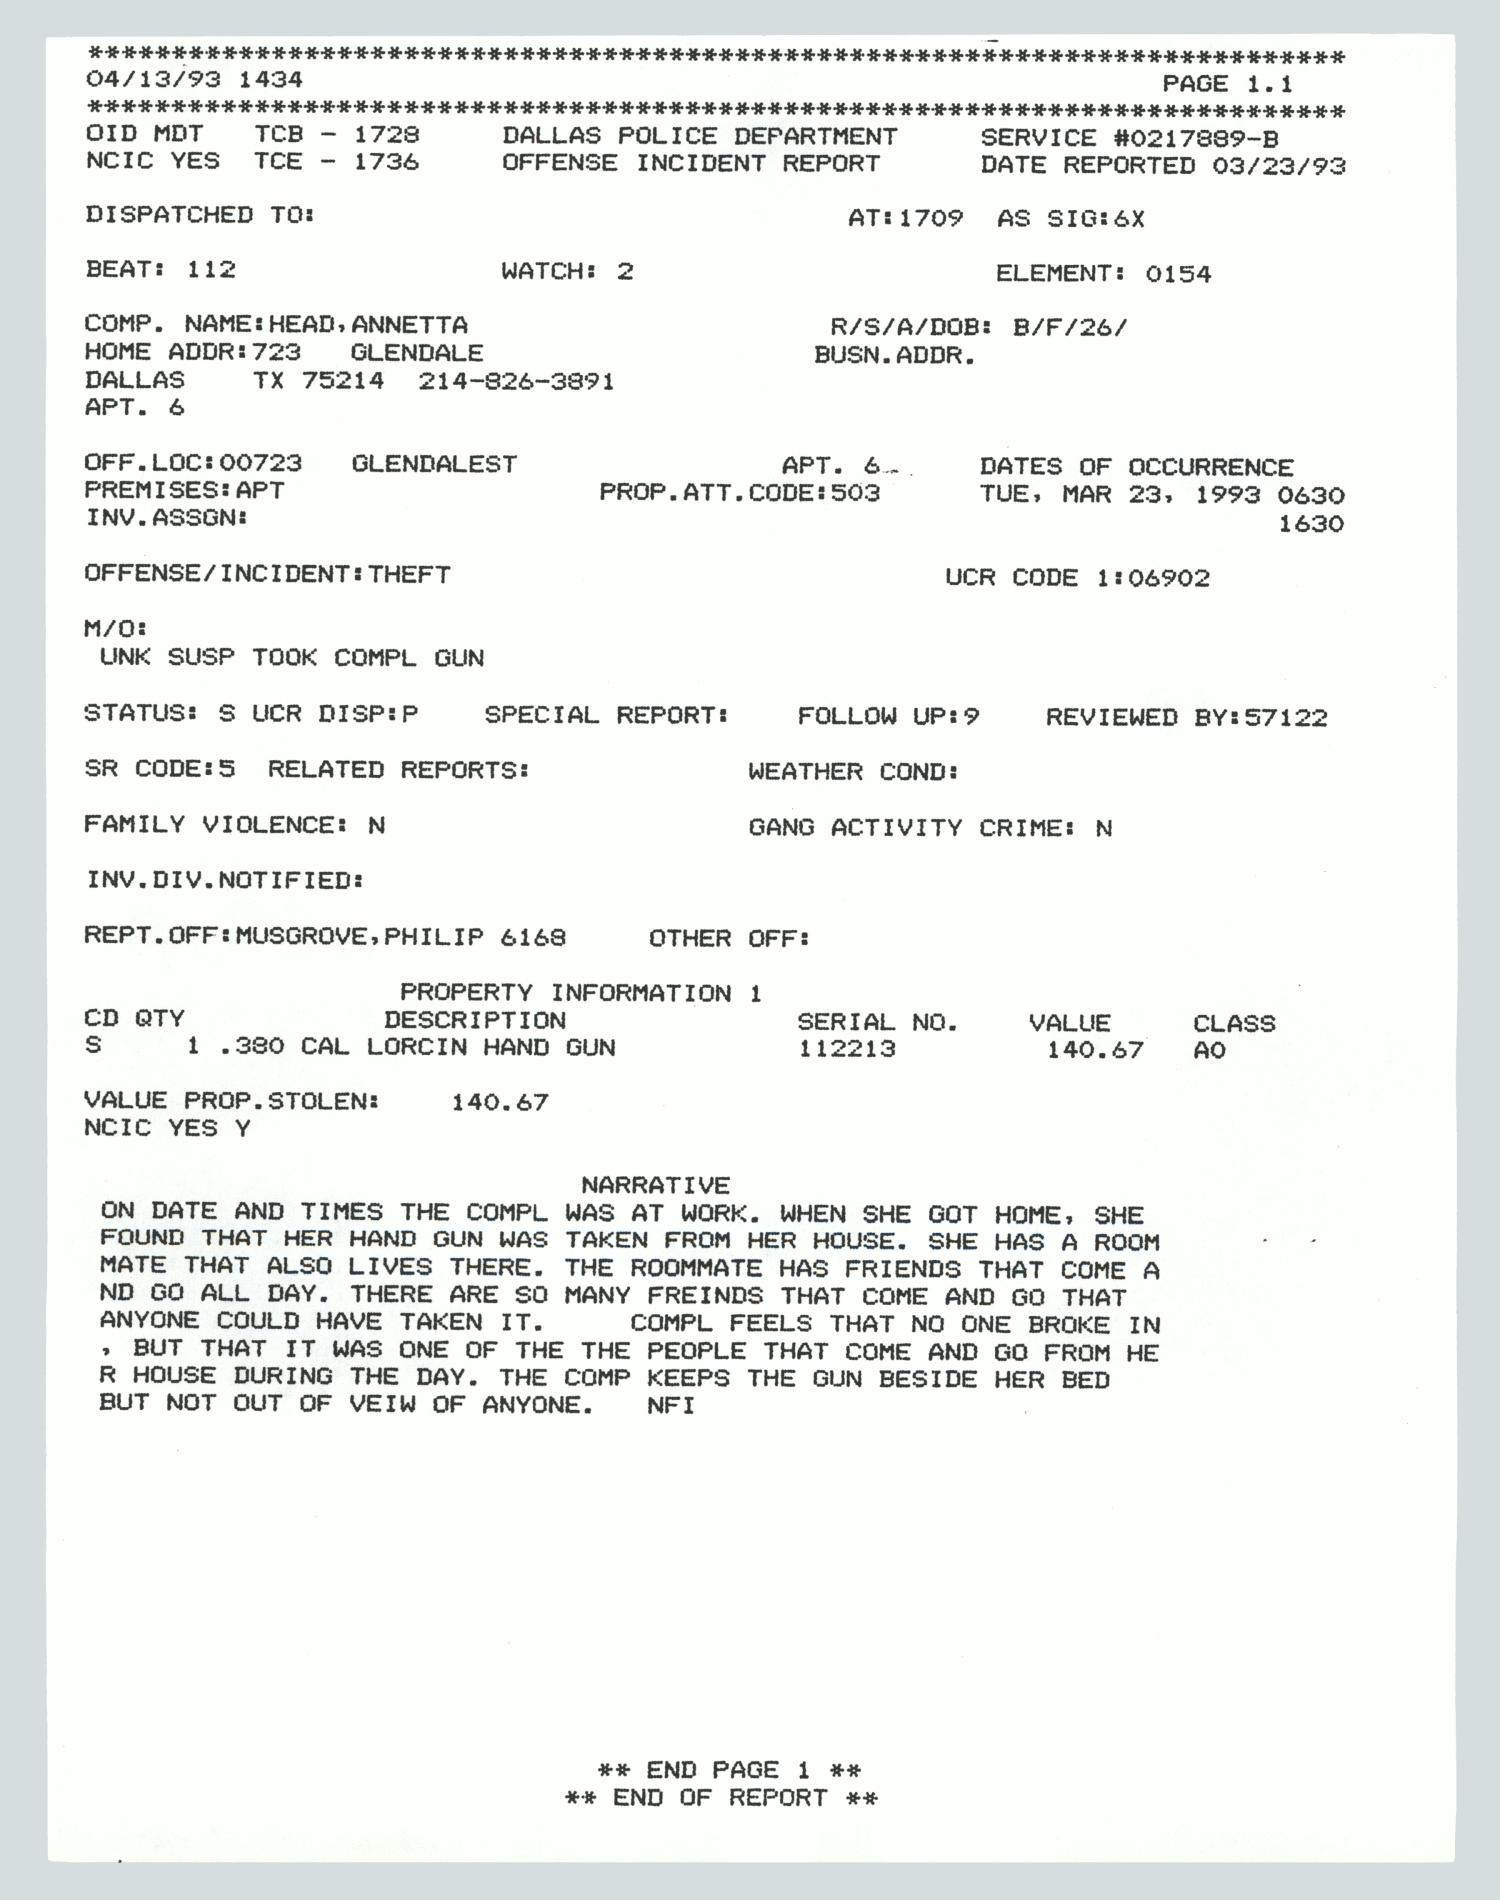 dallas police department offense incident report